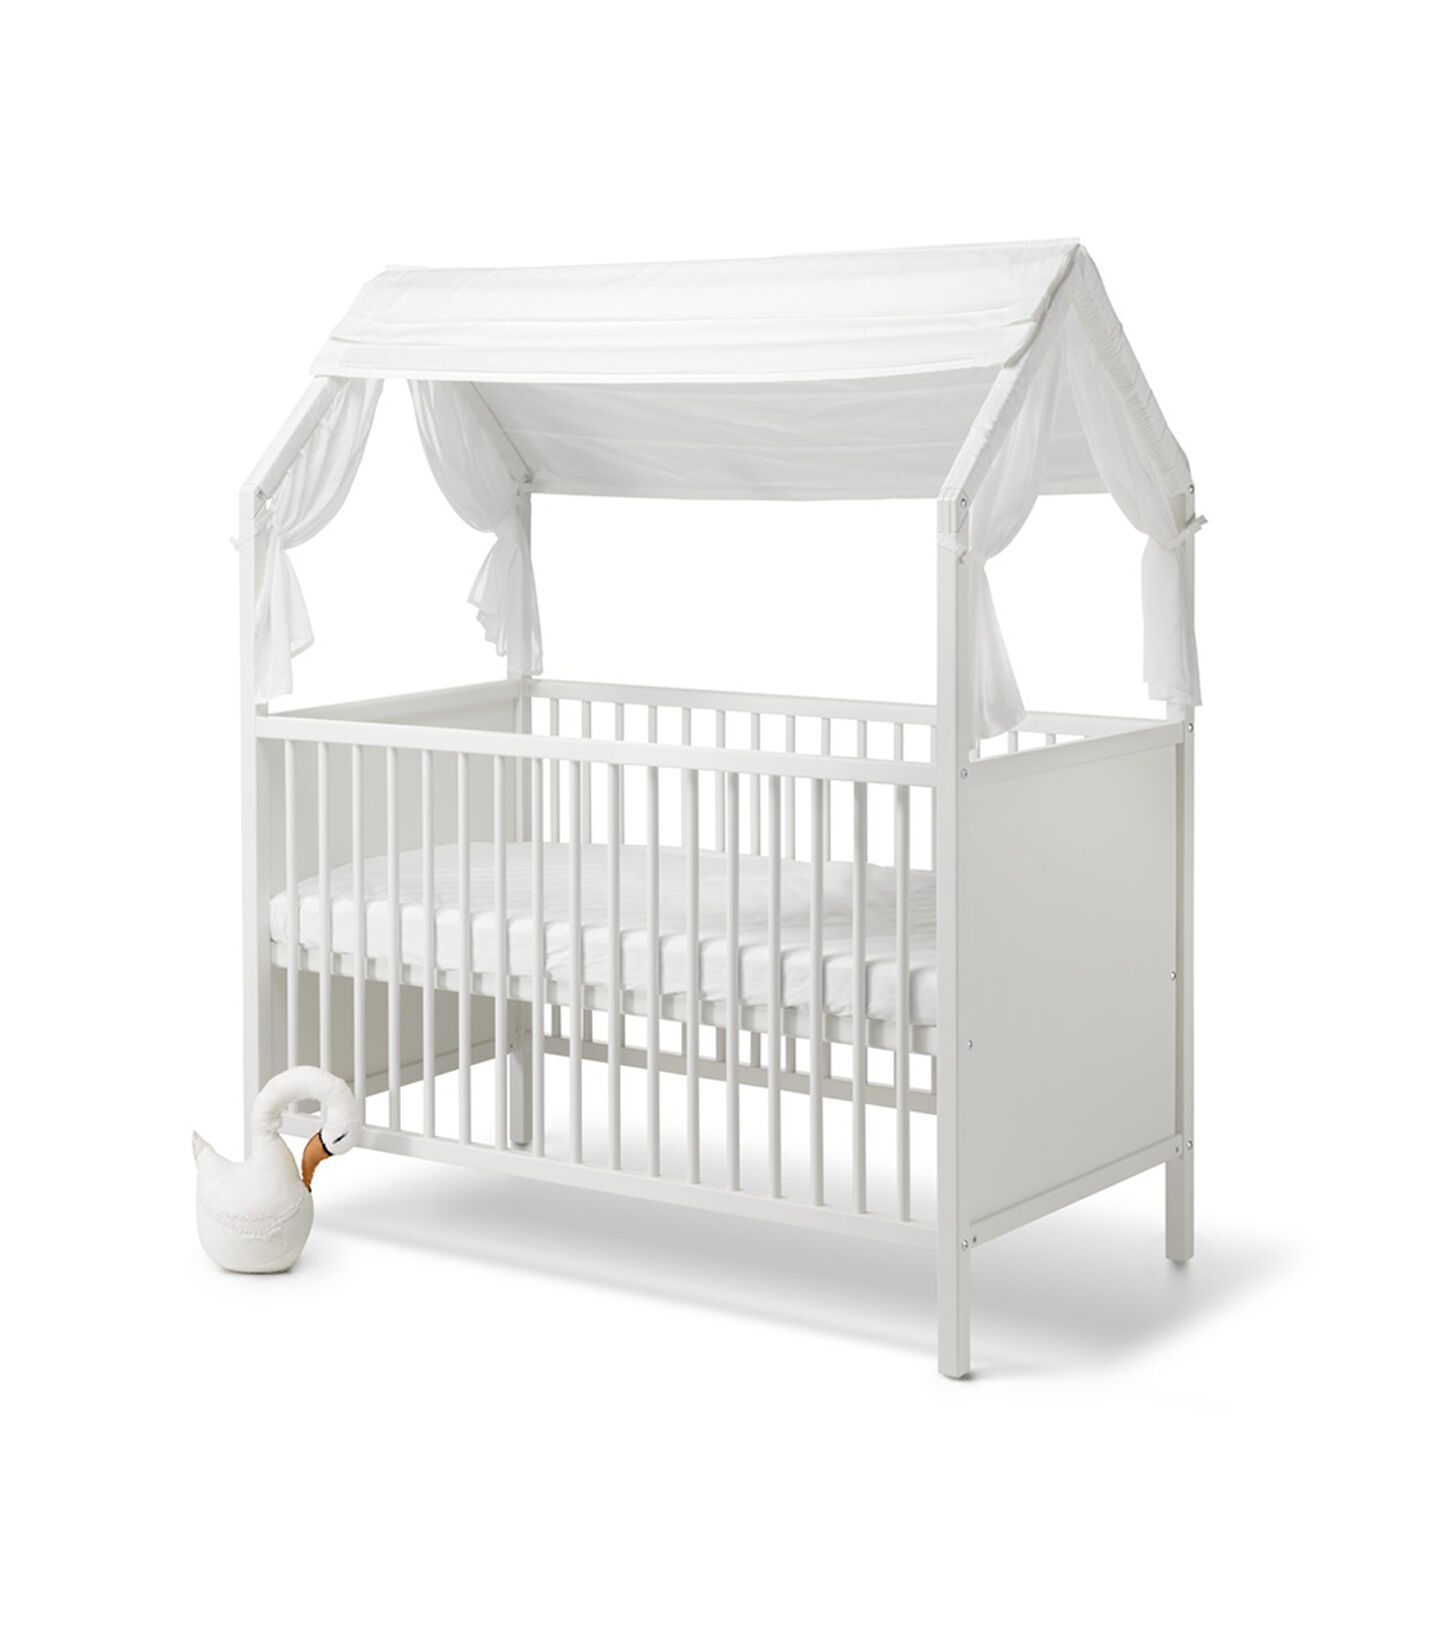 Stokke Home™ Bed